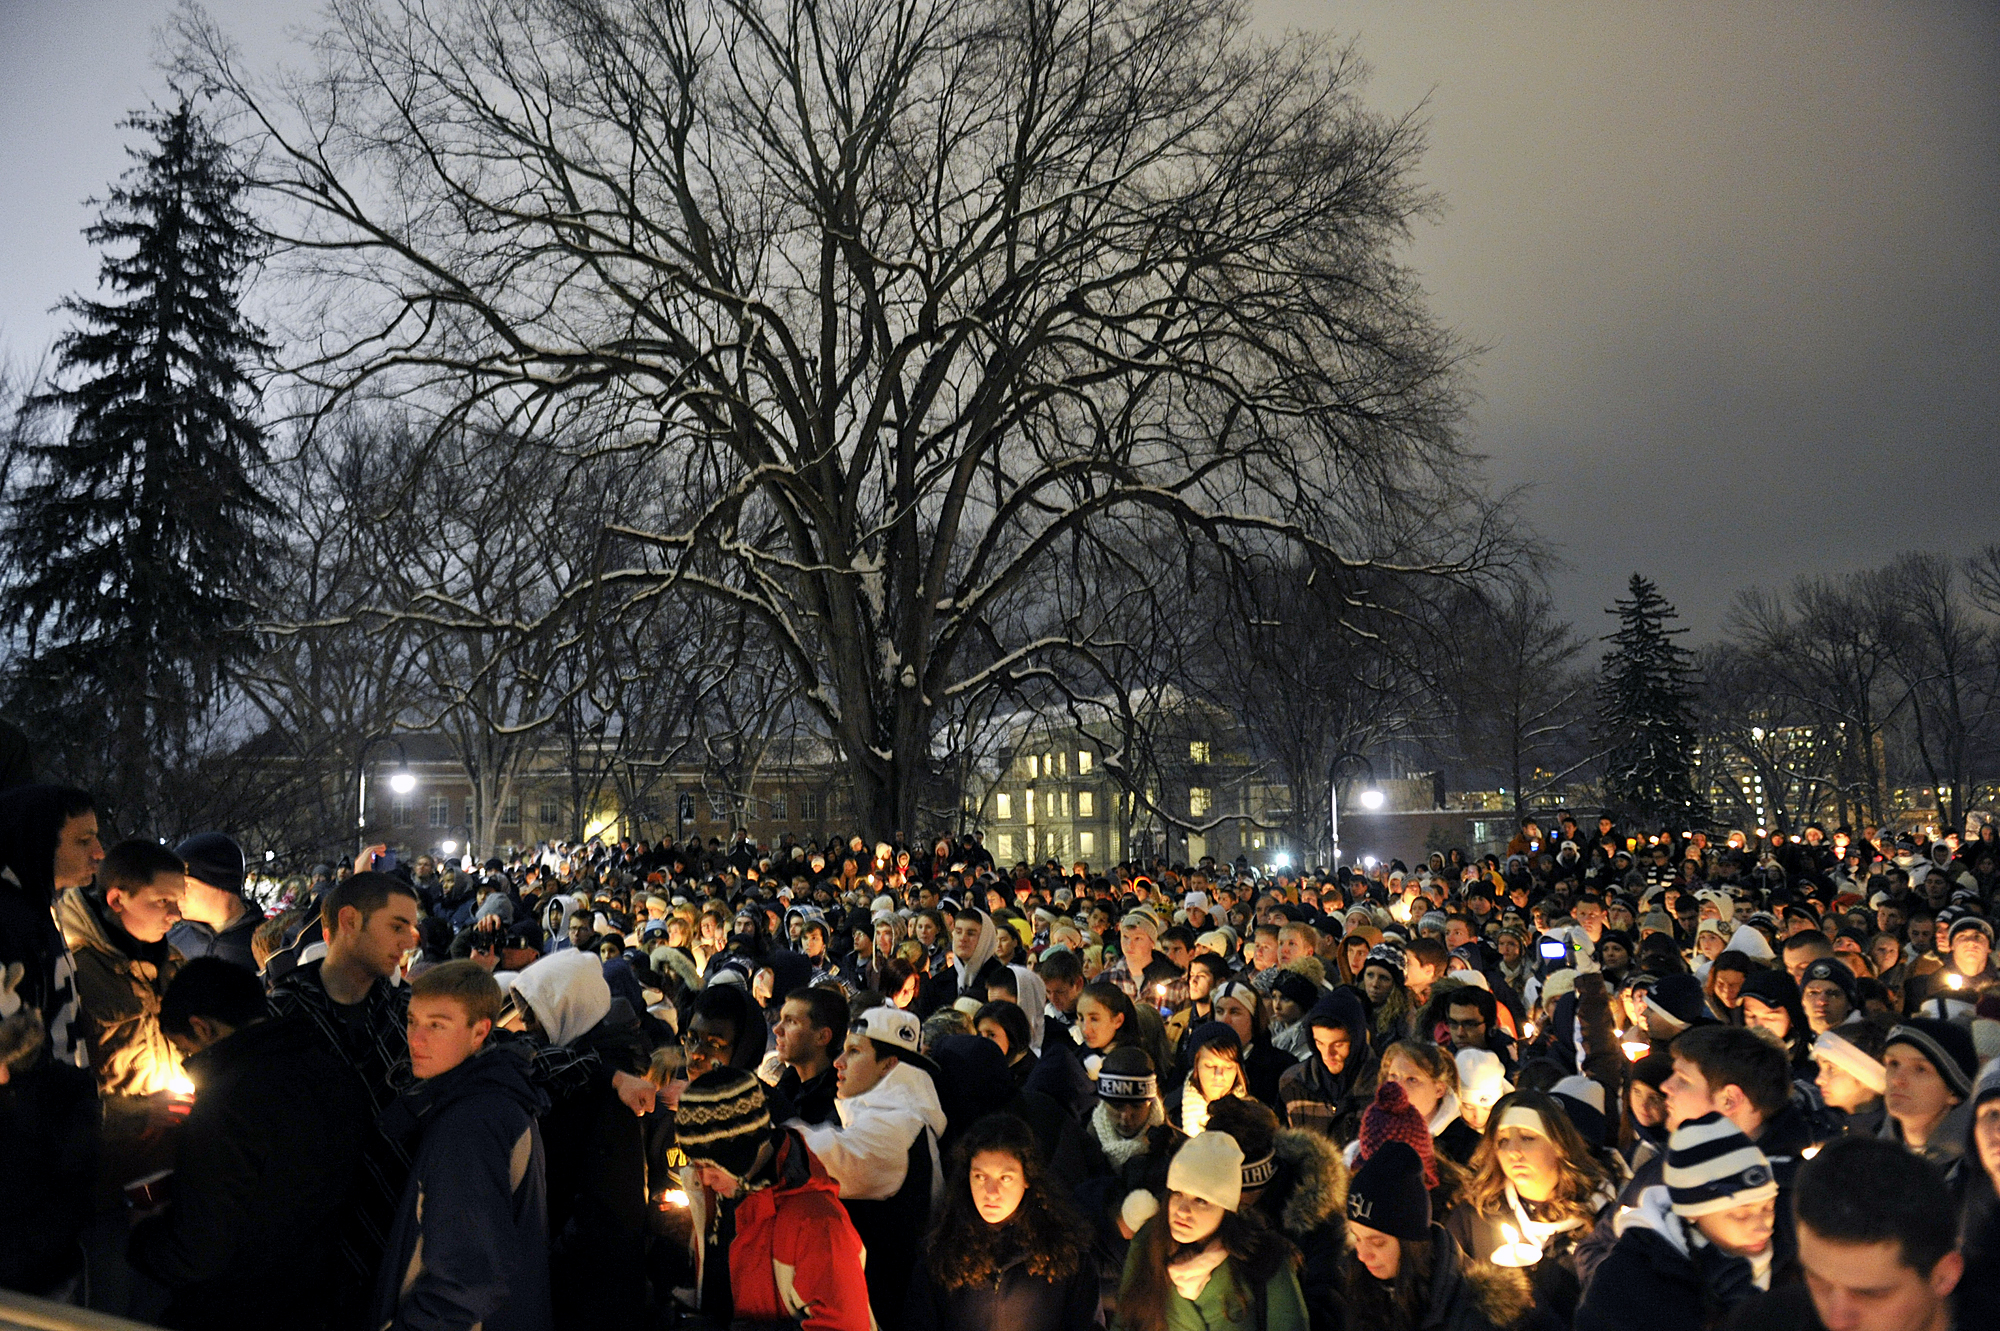 Students and community members gather on the Old Main lawn on Sunday, Jan. 22, 2012 for a vigil honoring Joe Paterno.